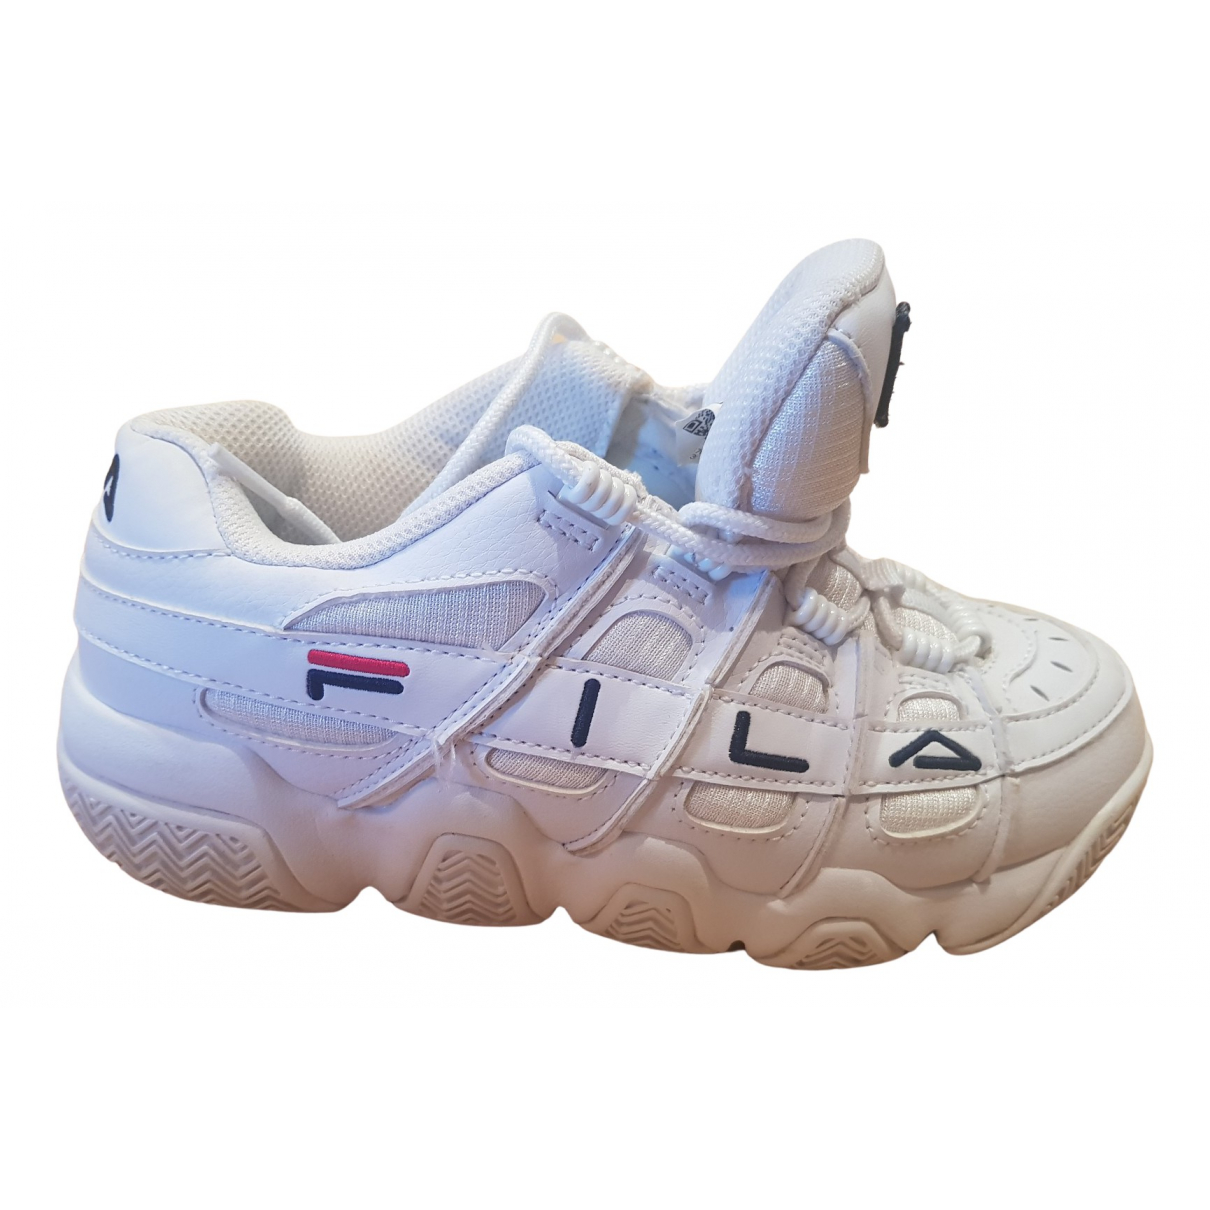 Fila N White Rubber Trainers for Kids 36 FR